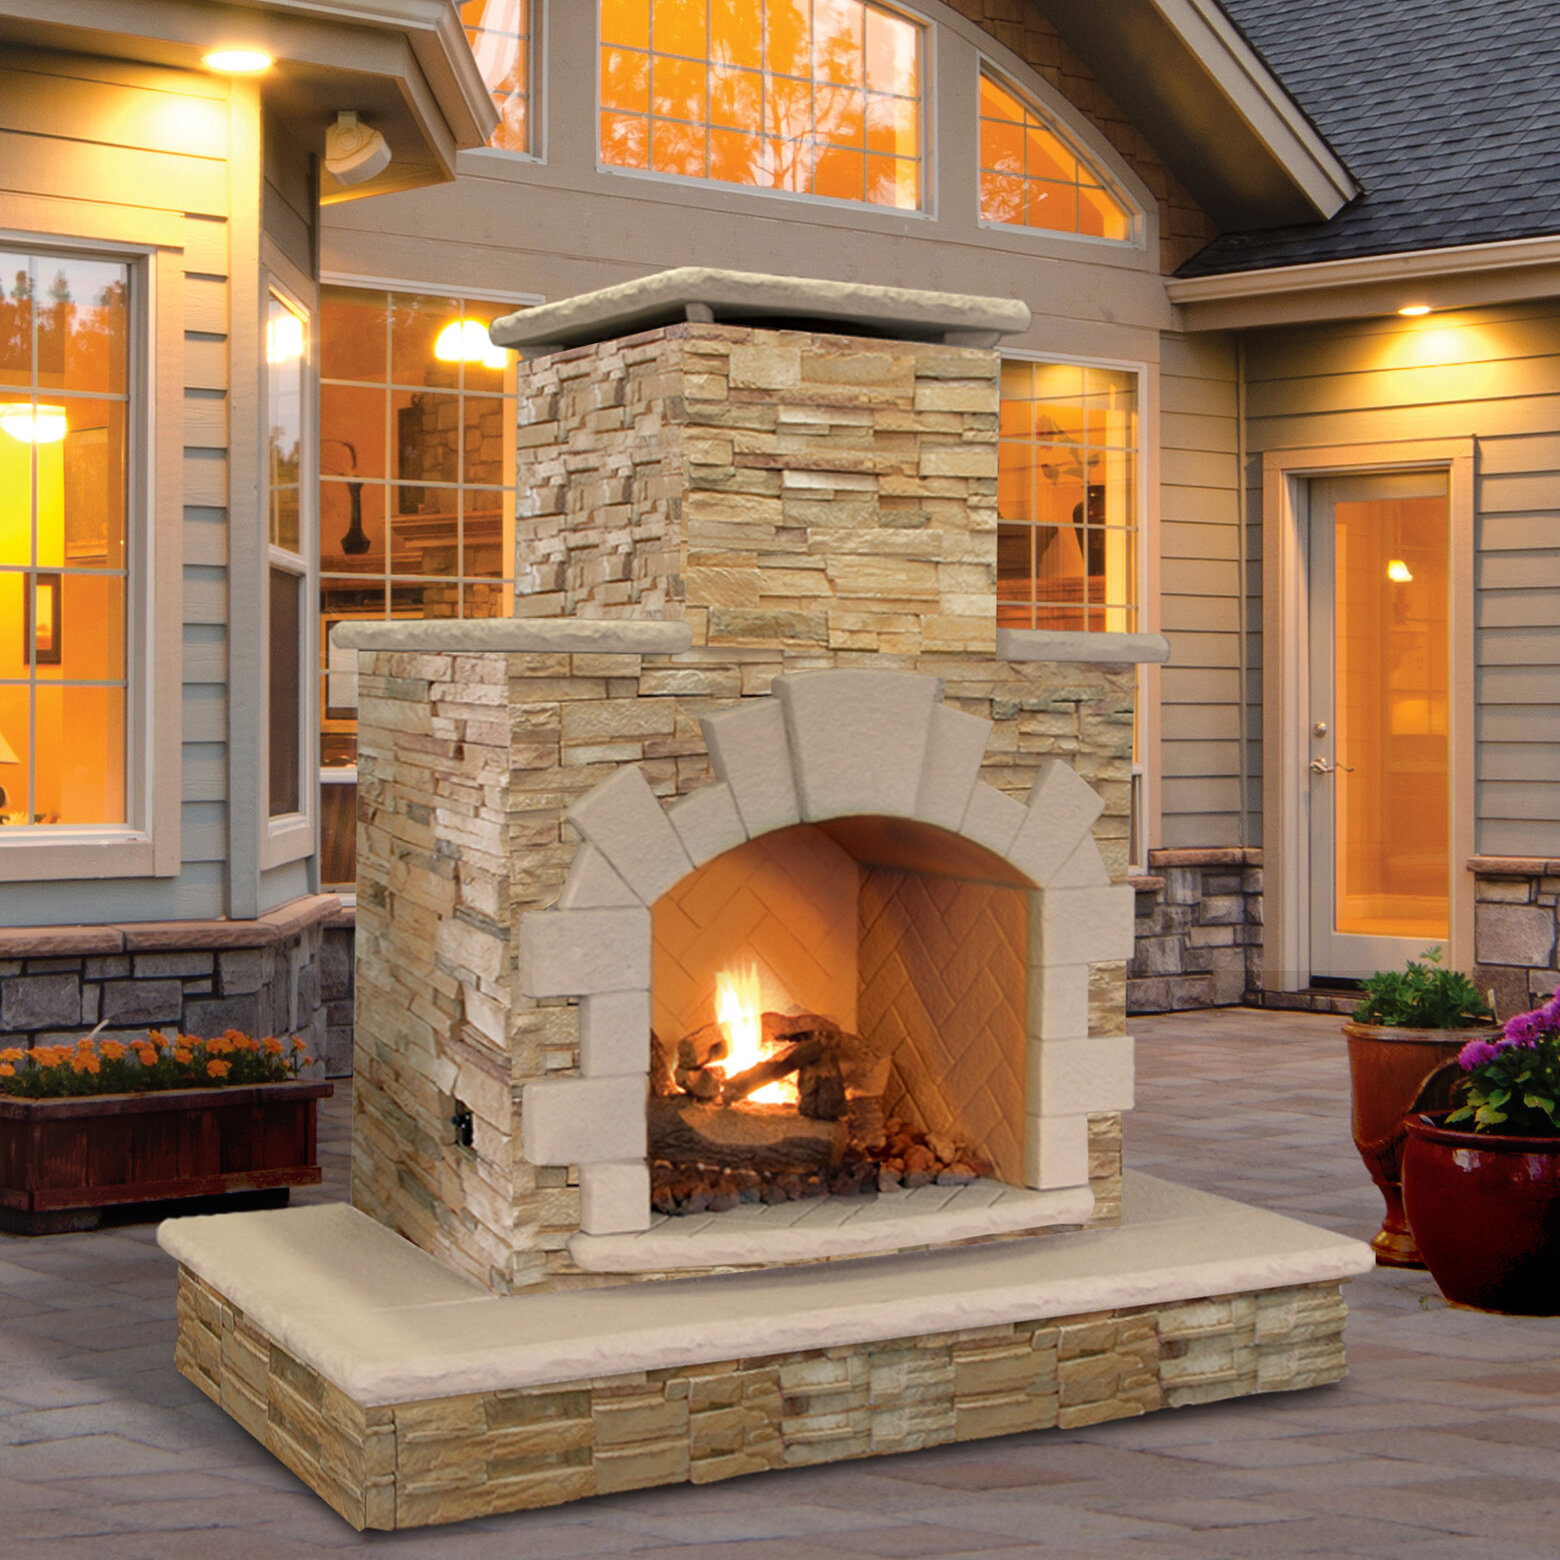 Backyard Fireplace Pictures : Details about CalFlame Natural Stone Propane  Gas Outdoor Fireplace